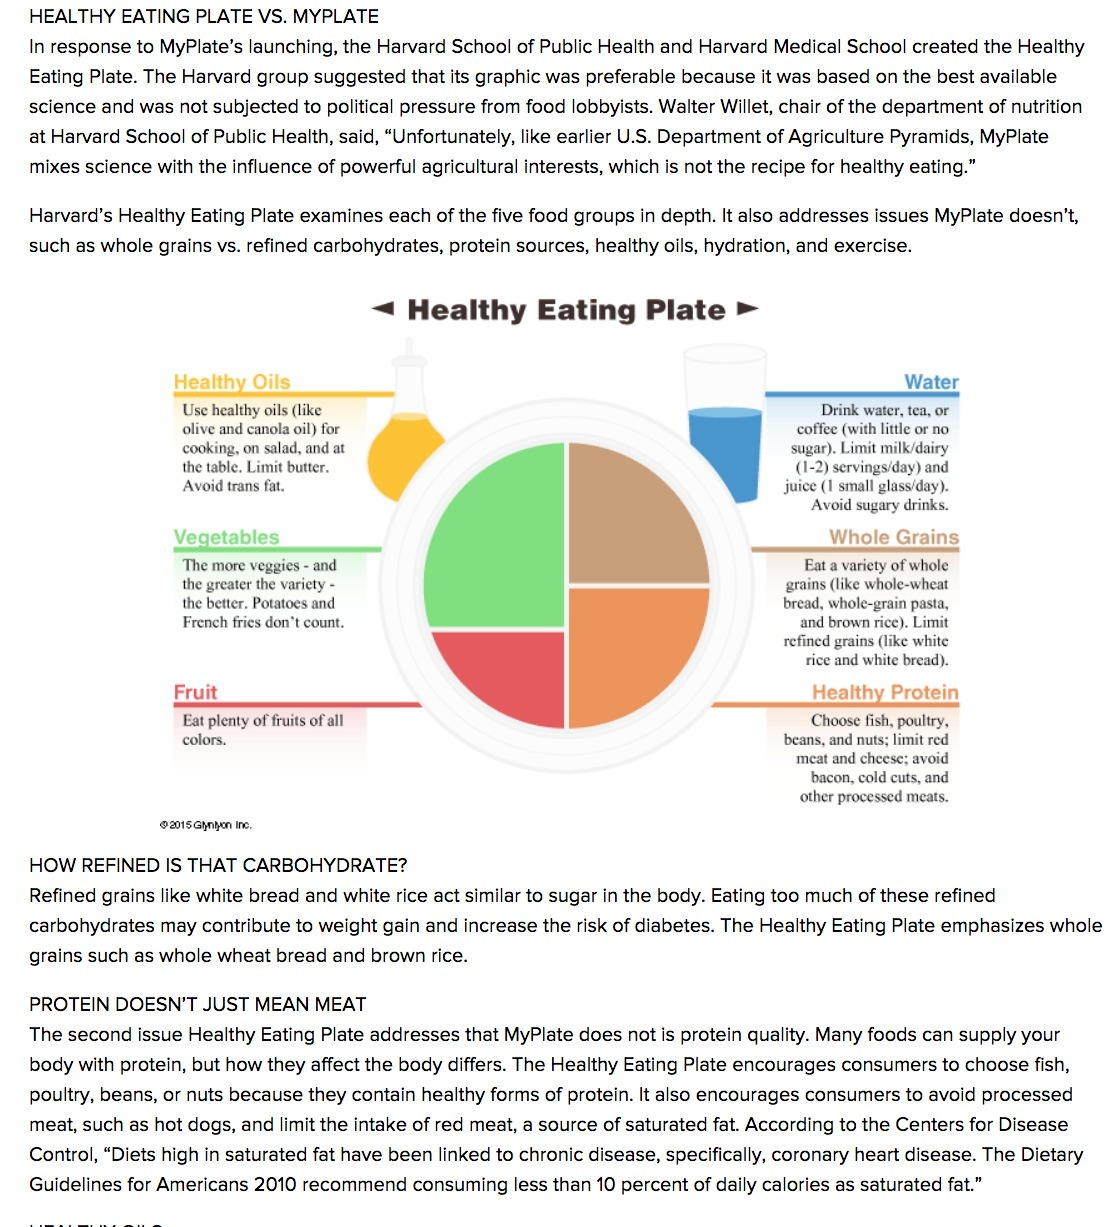 Which infographic do you find easier to read? The Healthy